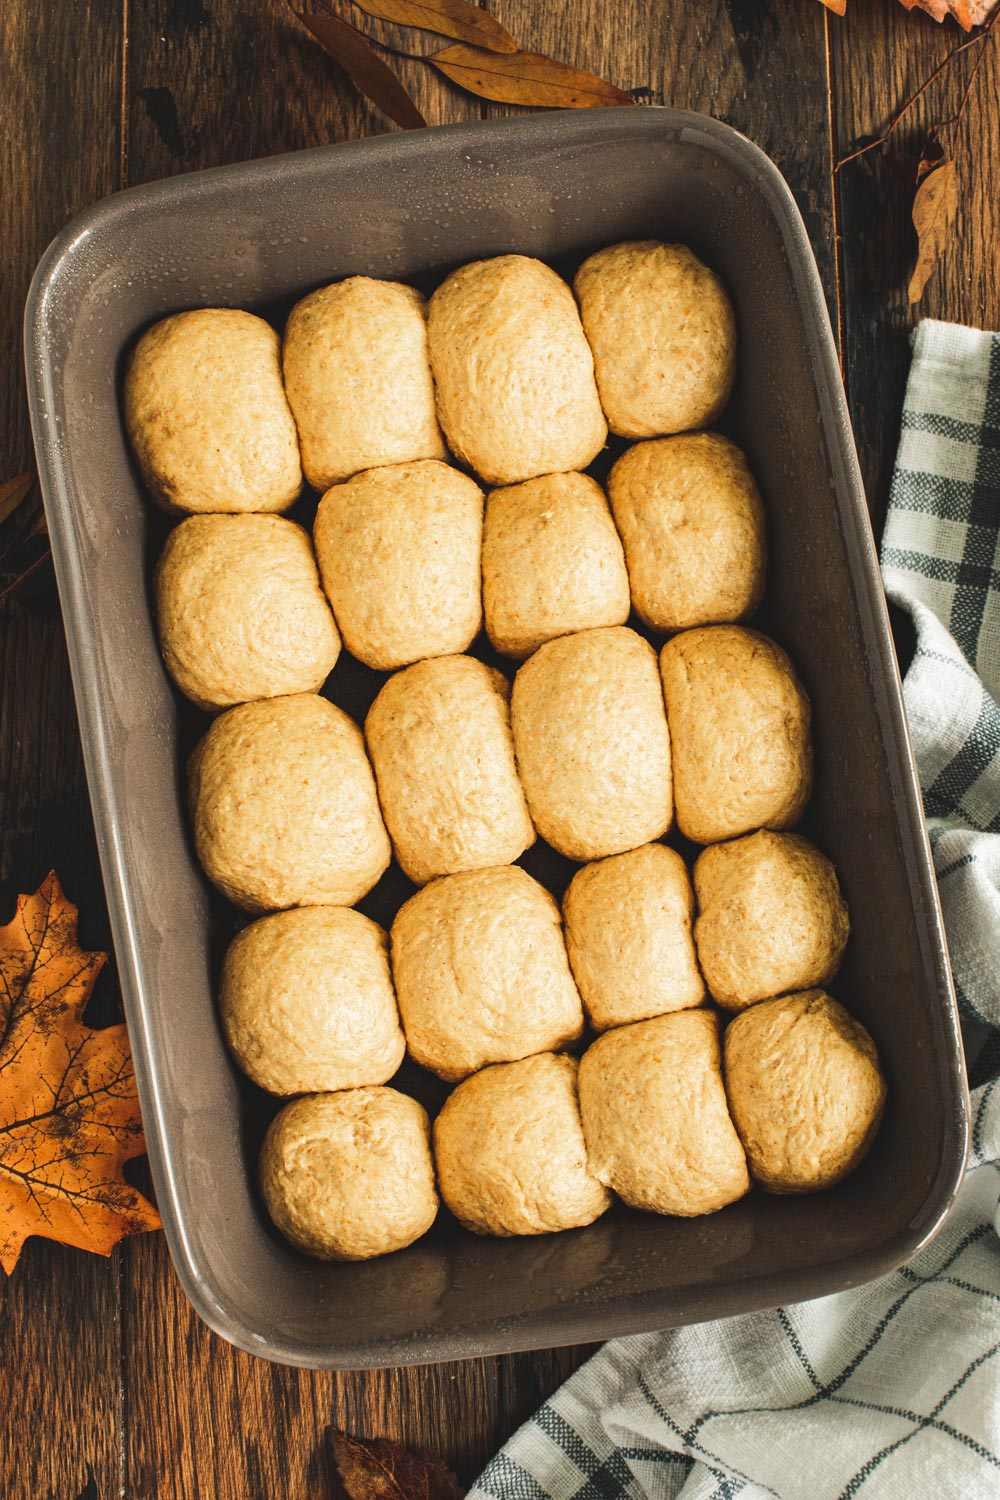 Unbaked pumpkin dinner rolls in a gray baking dish.